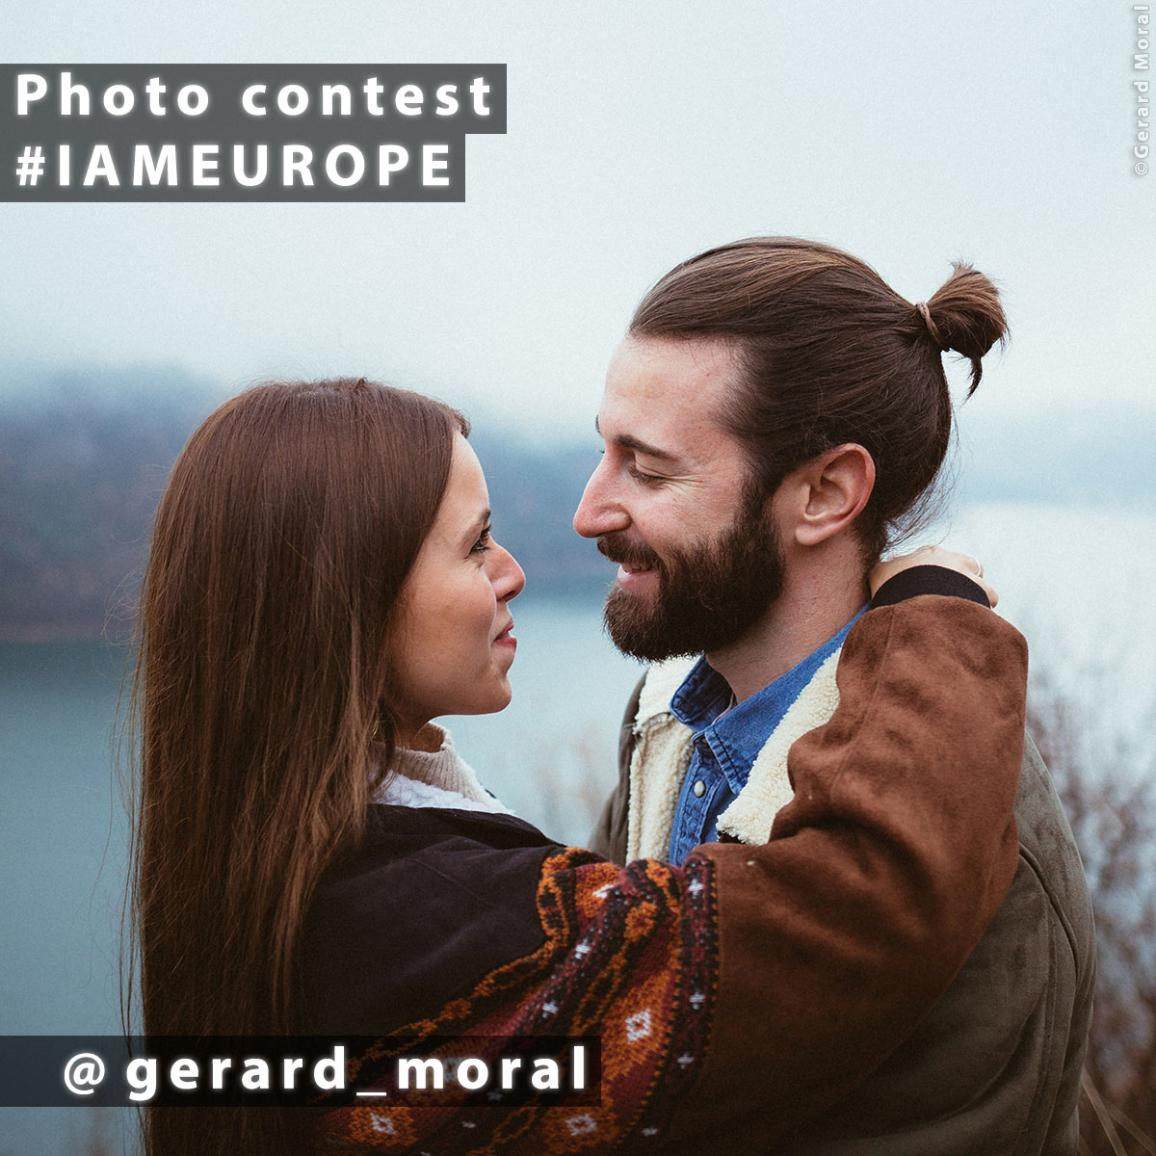 Special thanks to the Spanish photographer Gerard Moral (instagram @gerard_moral) for your photo contest testimonial